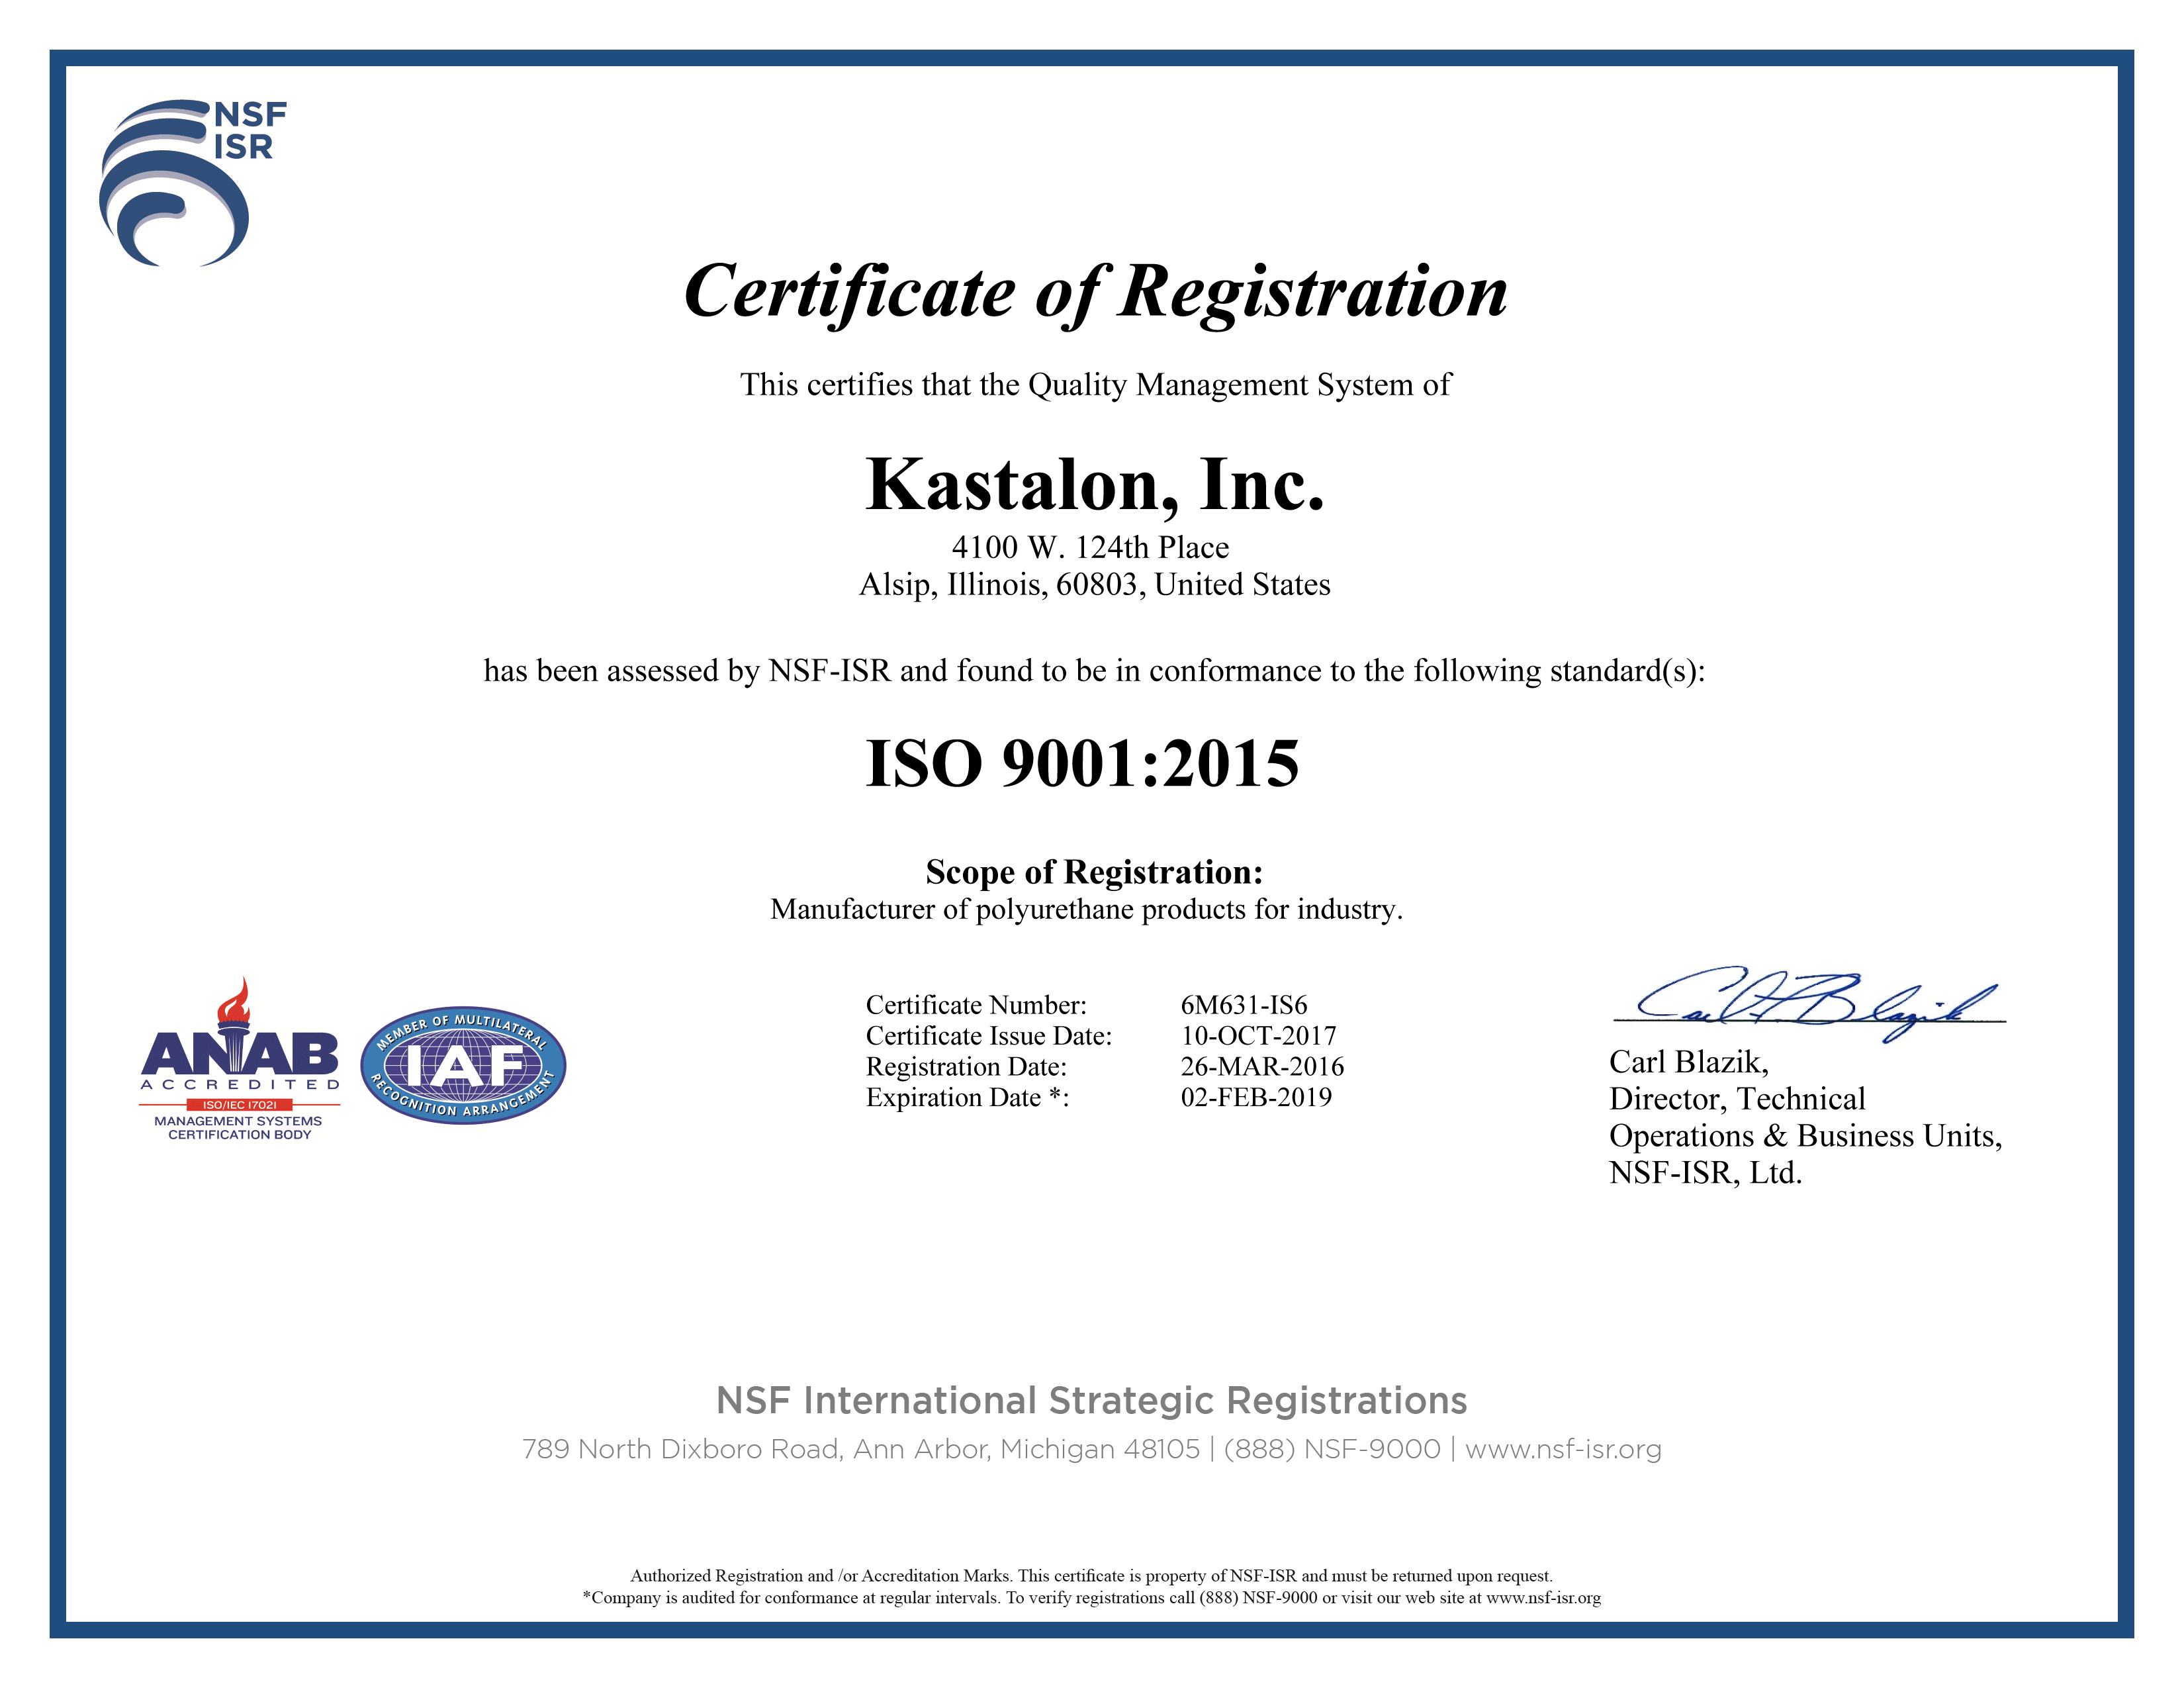 Kastalon announces ISO 9001:2015 certification by NSF-ISR